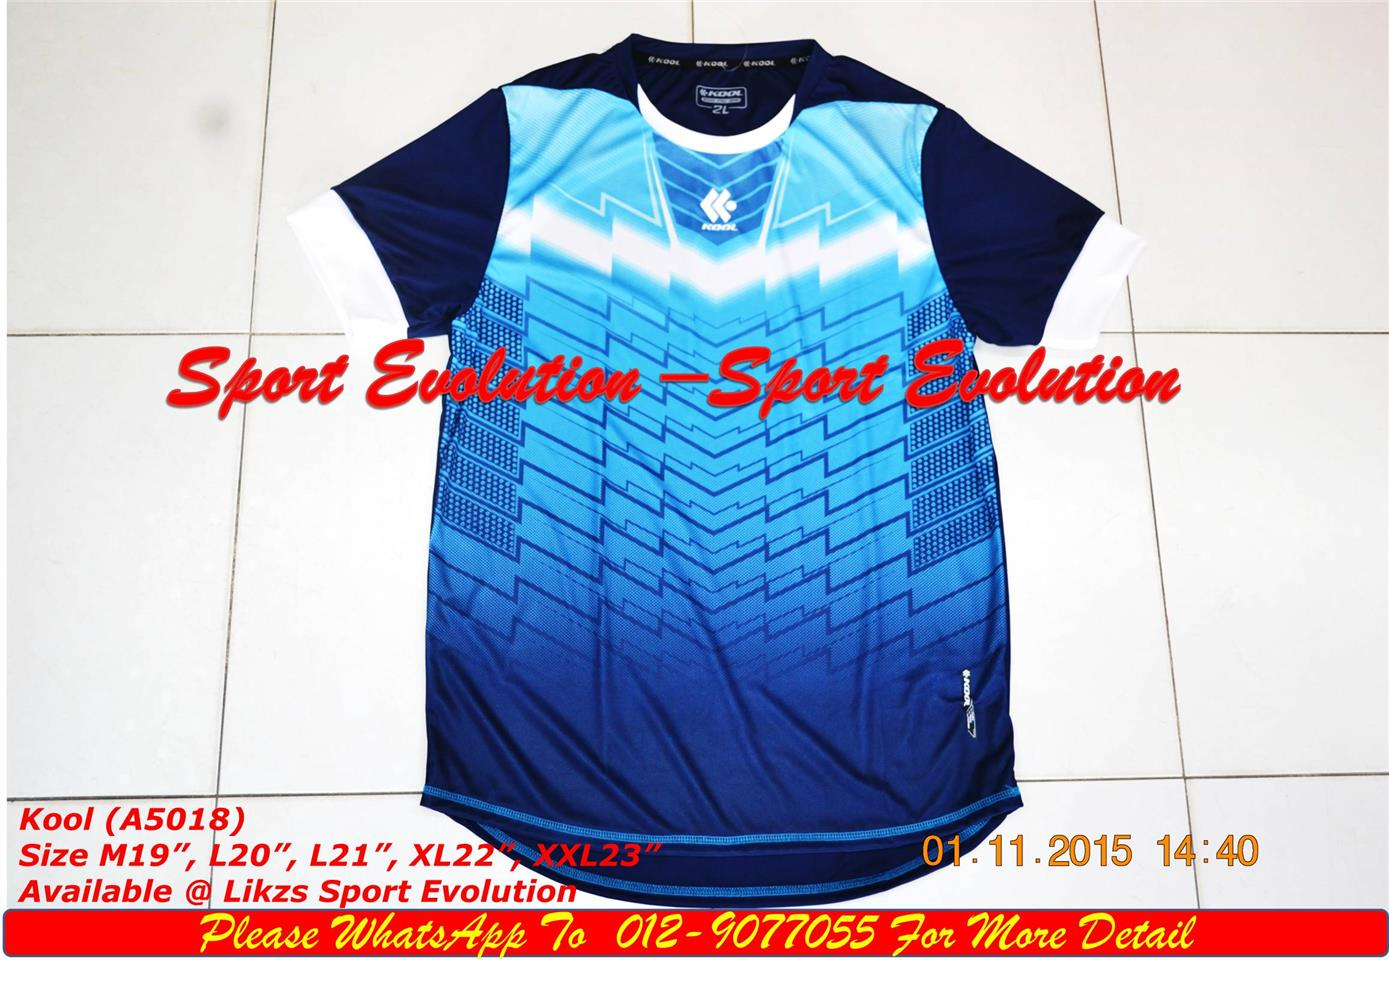 Kool Jersey 5086 (Team Order) Skyblue